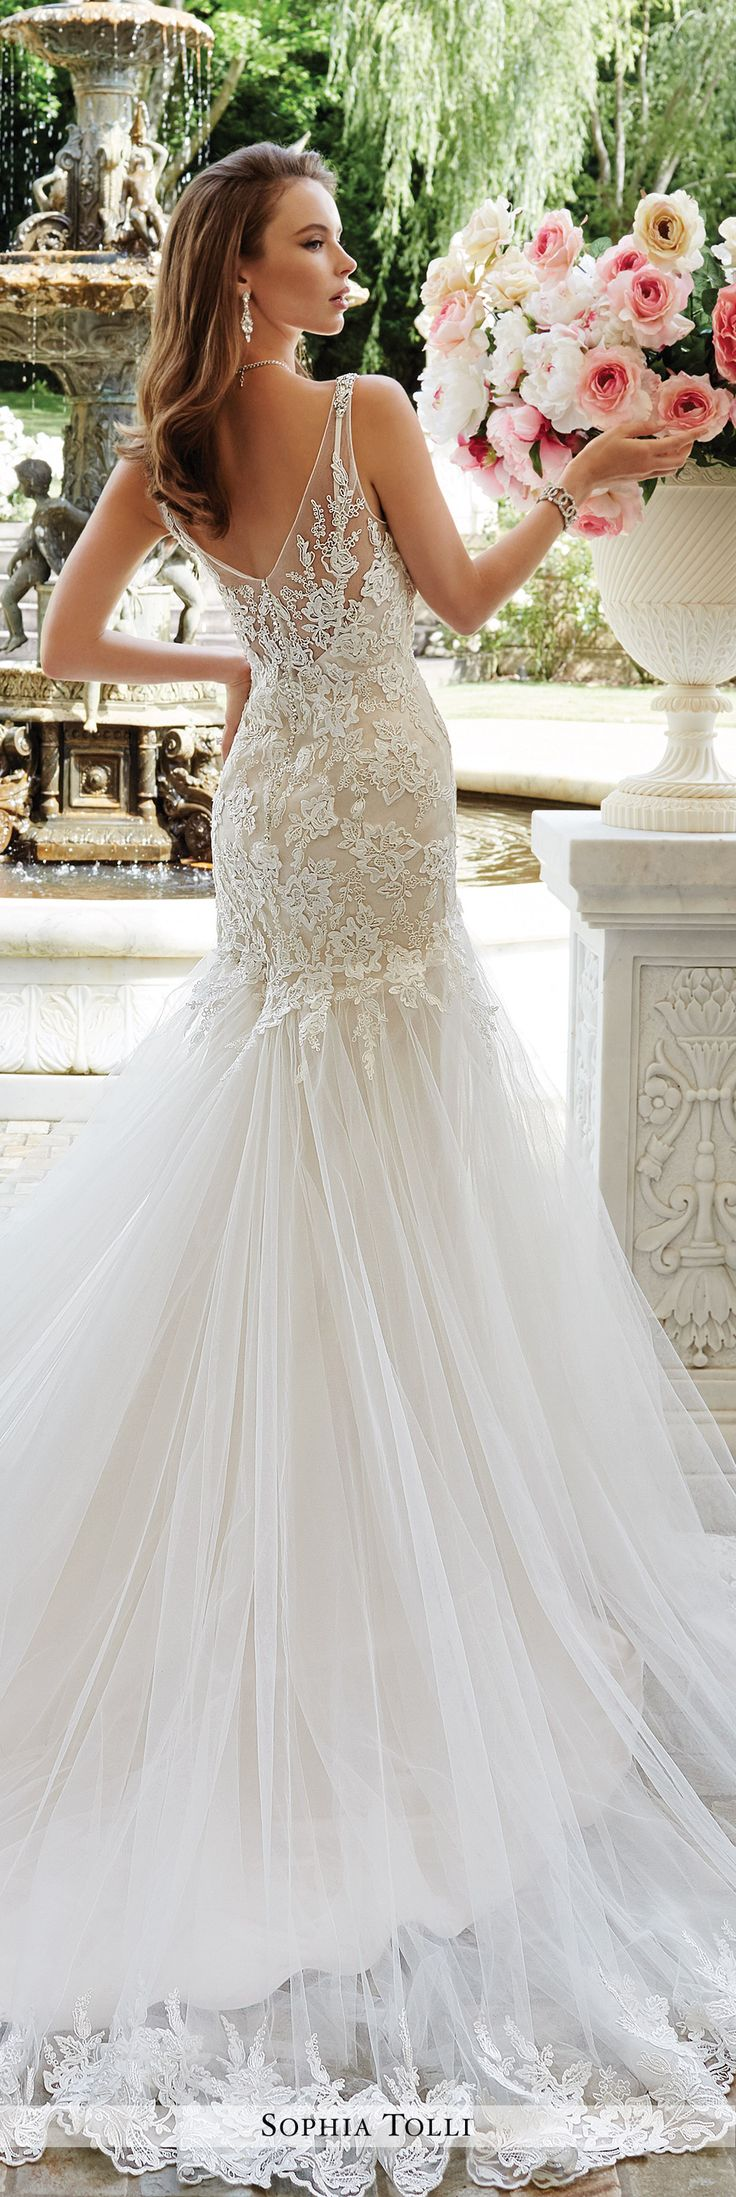 Sophia Tolli - Y21665 Rome - Two-piece satin and tulle wedding dress set, sleeveless soft satin sheath under a sleeveless soft tulle fit and flare gown with encrusted shoulder straps, deep V-neckline, scattered sequin rich lace appliqué bodice with dropped waist, beaded illusion V-back finished with zipper trimmed with diamante buttons, finely gathered tulle skirt with scalloped lace hem and chapel train. Sizes: 0 - 28 Colors: Ivory/Champagne, Ivory, White